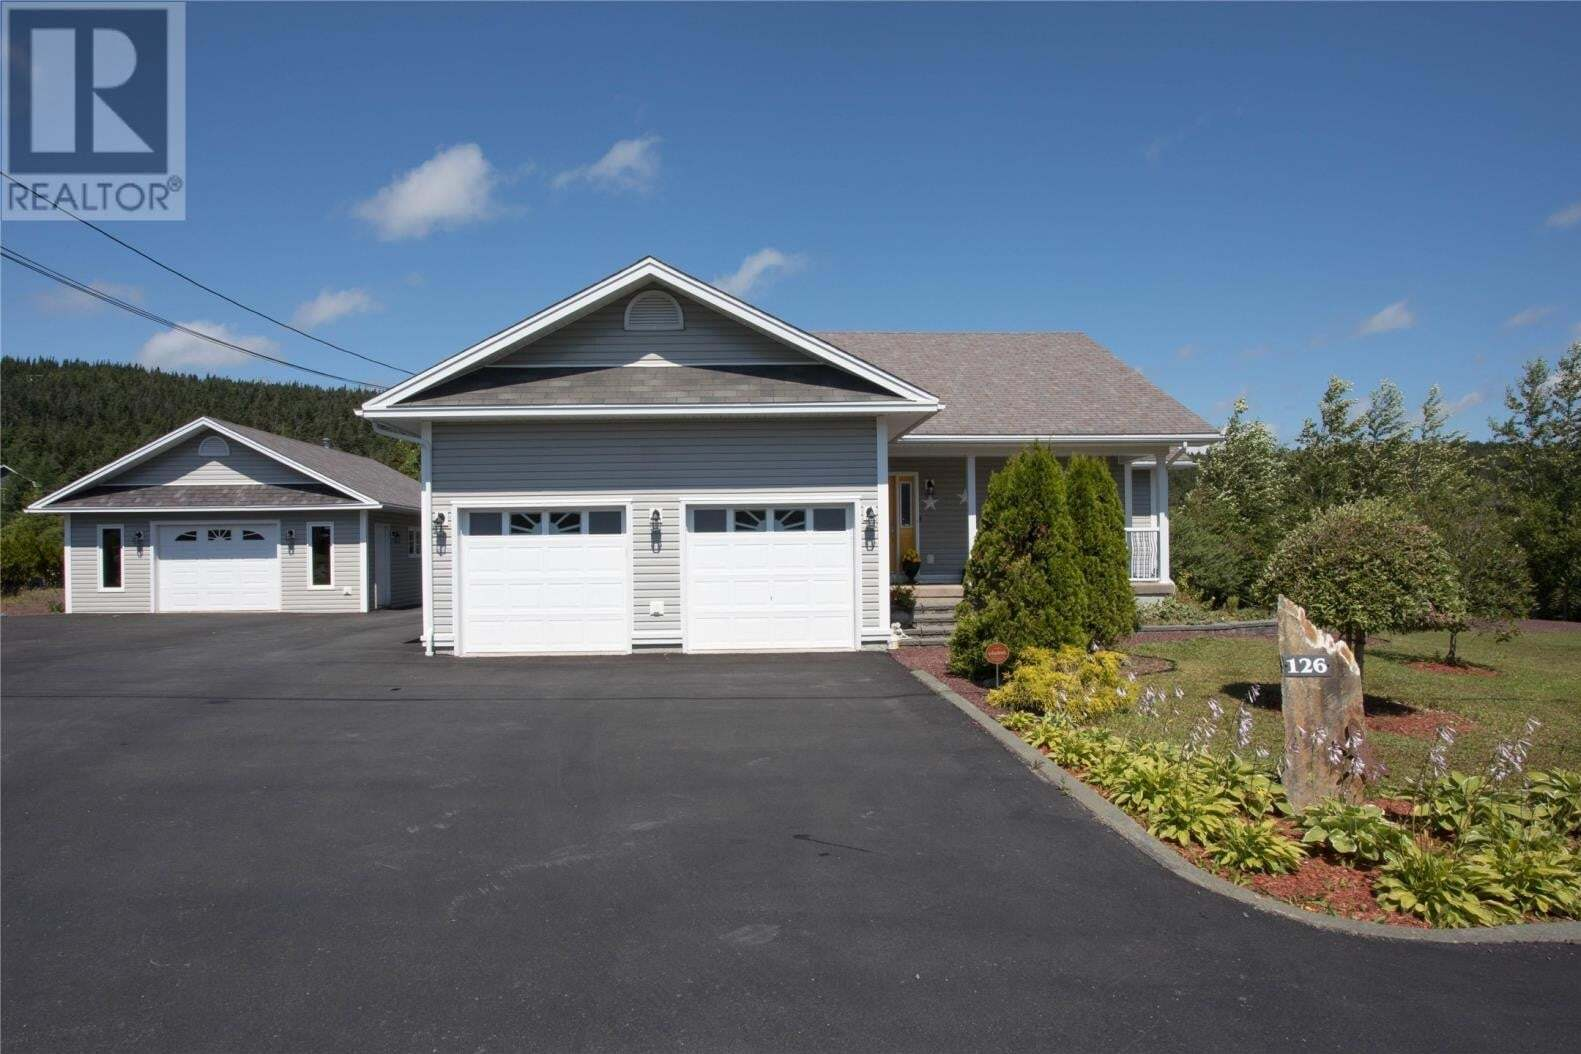 House for sale at 126 Valley Rd Carbonear Newfoundland - MLS: 1213845